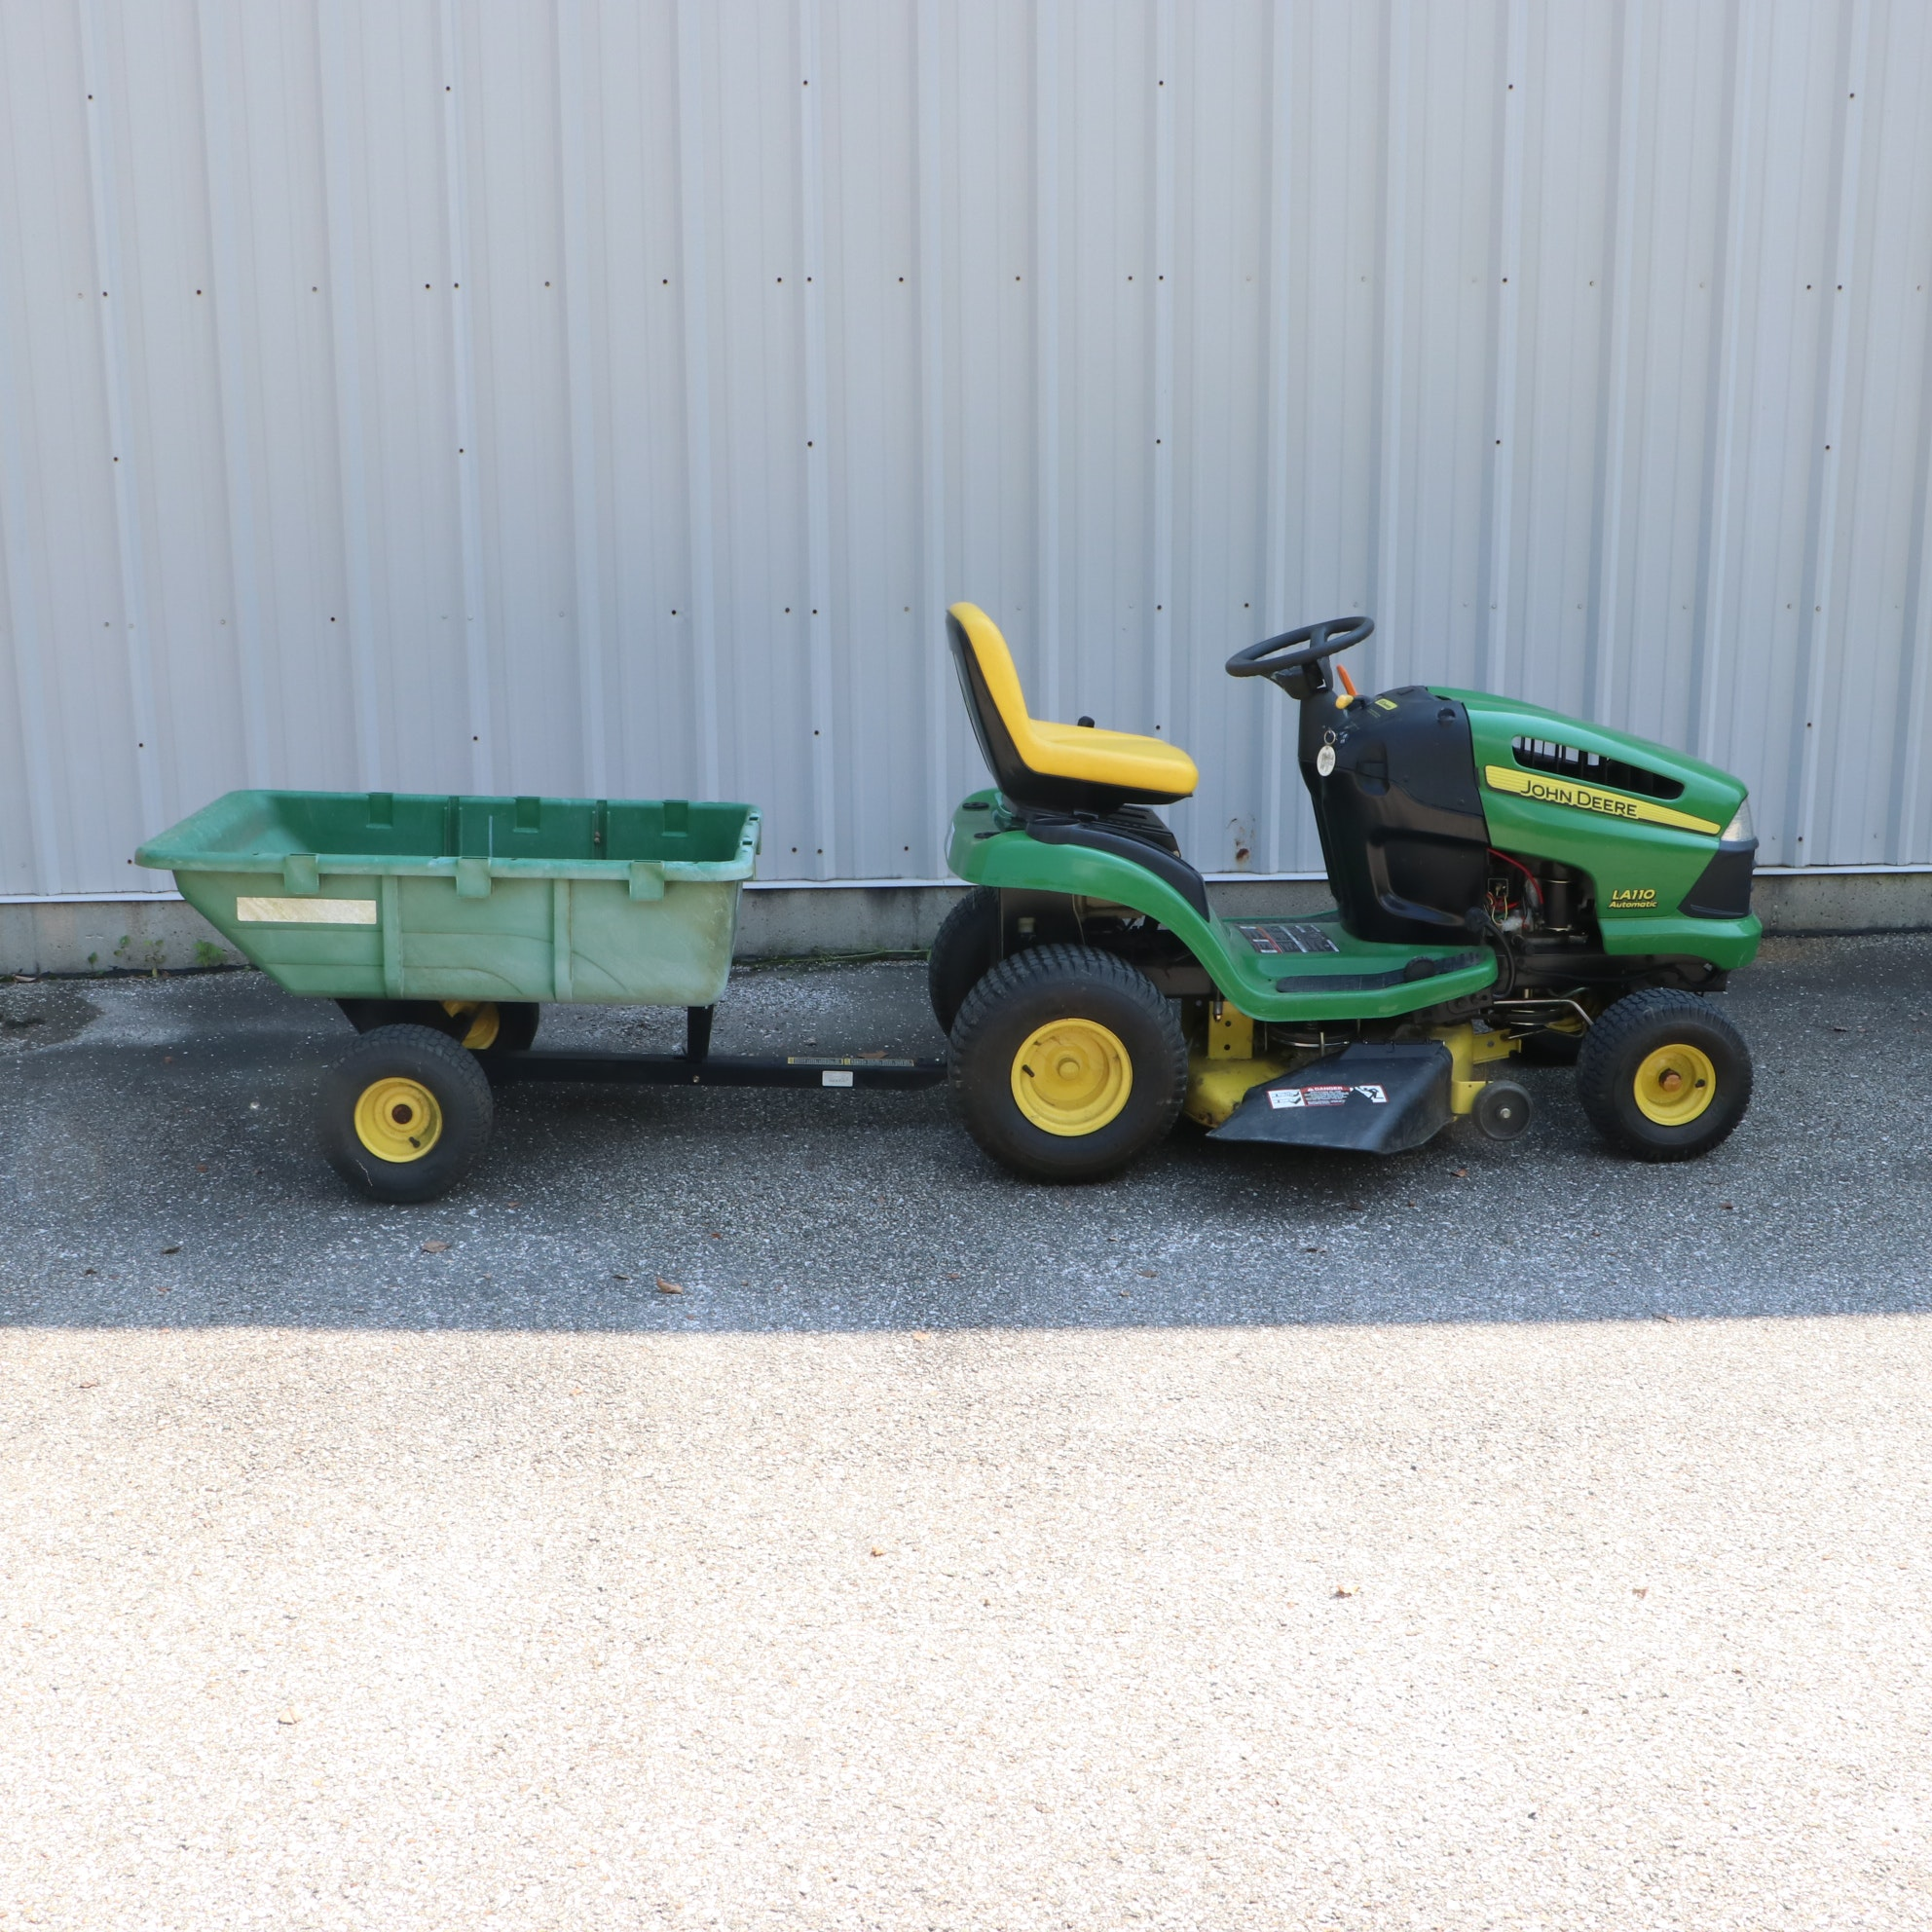 2007 John Deere LA110 Ride on Mower with Trailer